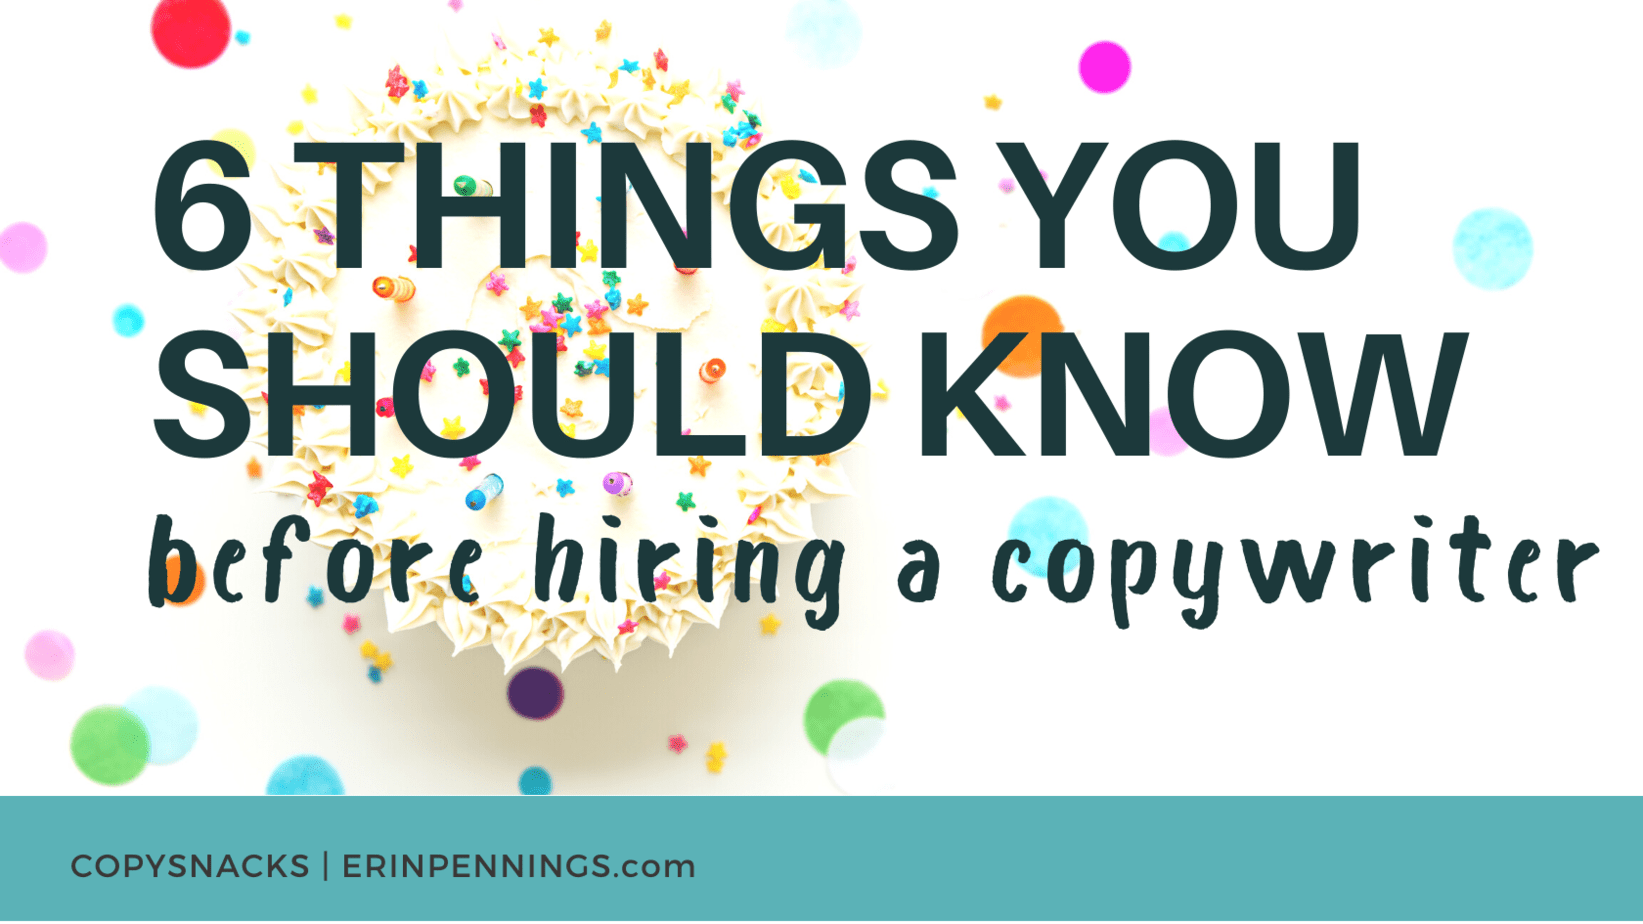 6 Things You Should Know Before Hiring a Copywriter